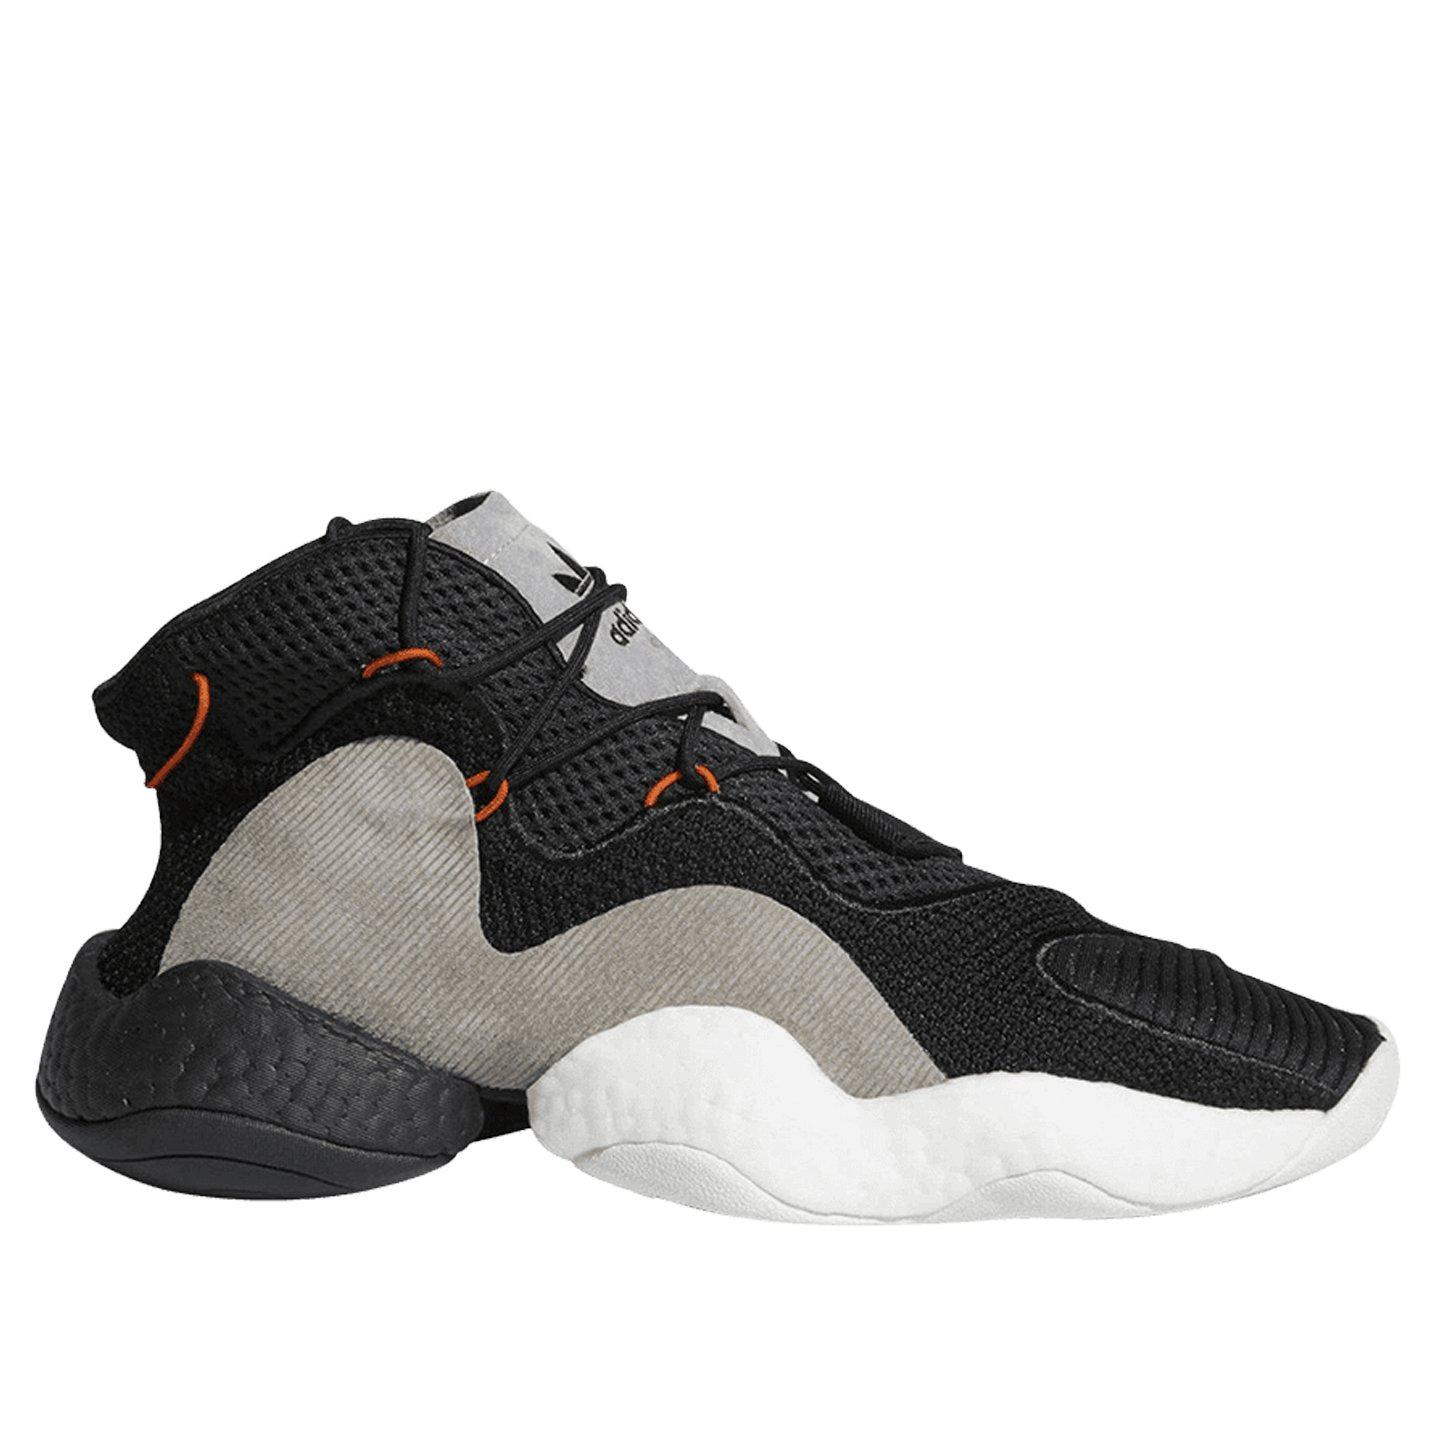 best sneakers a96b2 8b5dd Adidas - Black Crazy Byw Lvl I for Men - Lyst. View fullscreen